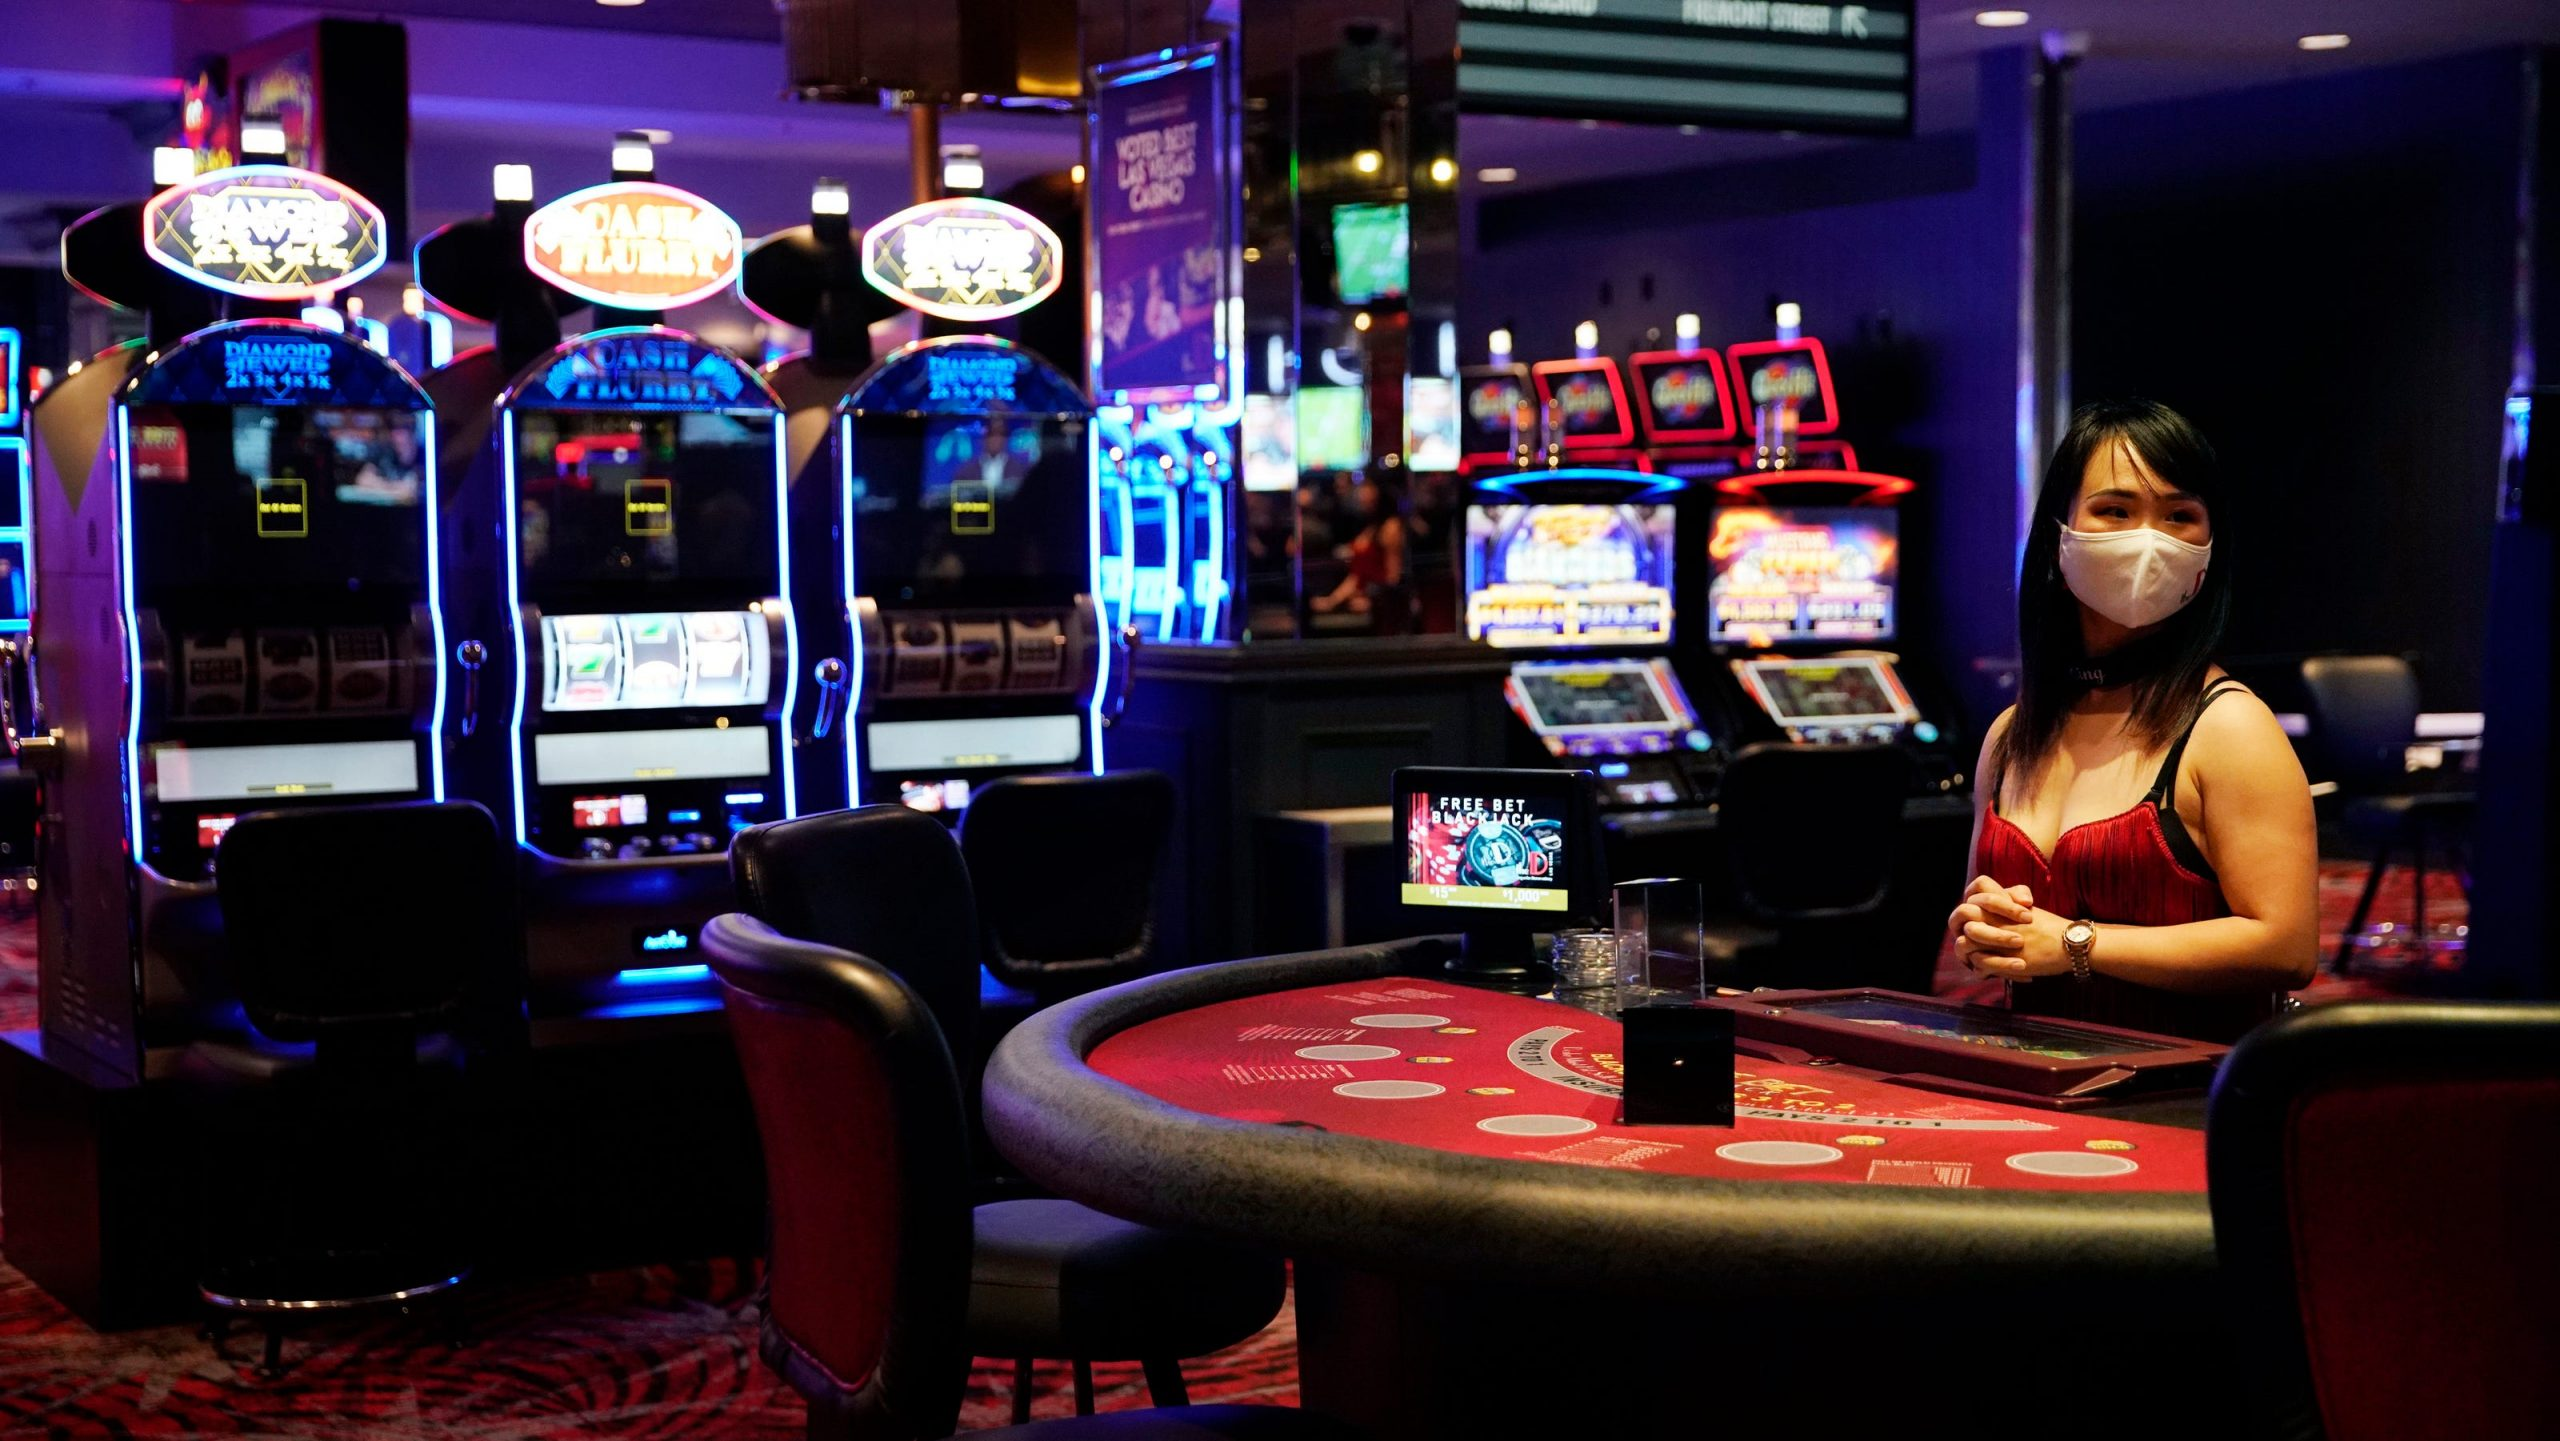 Casino Design and Table Games